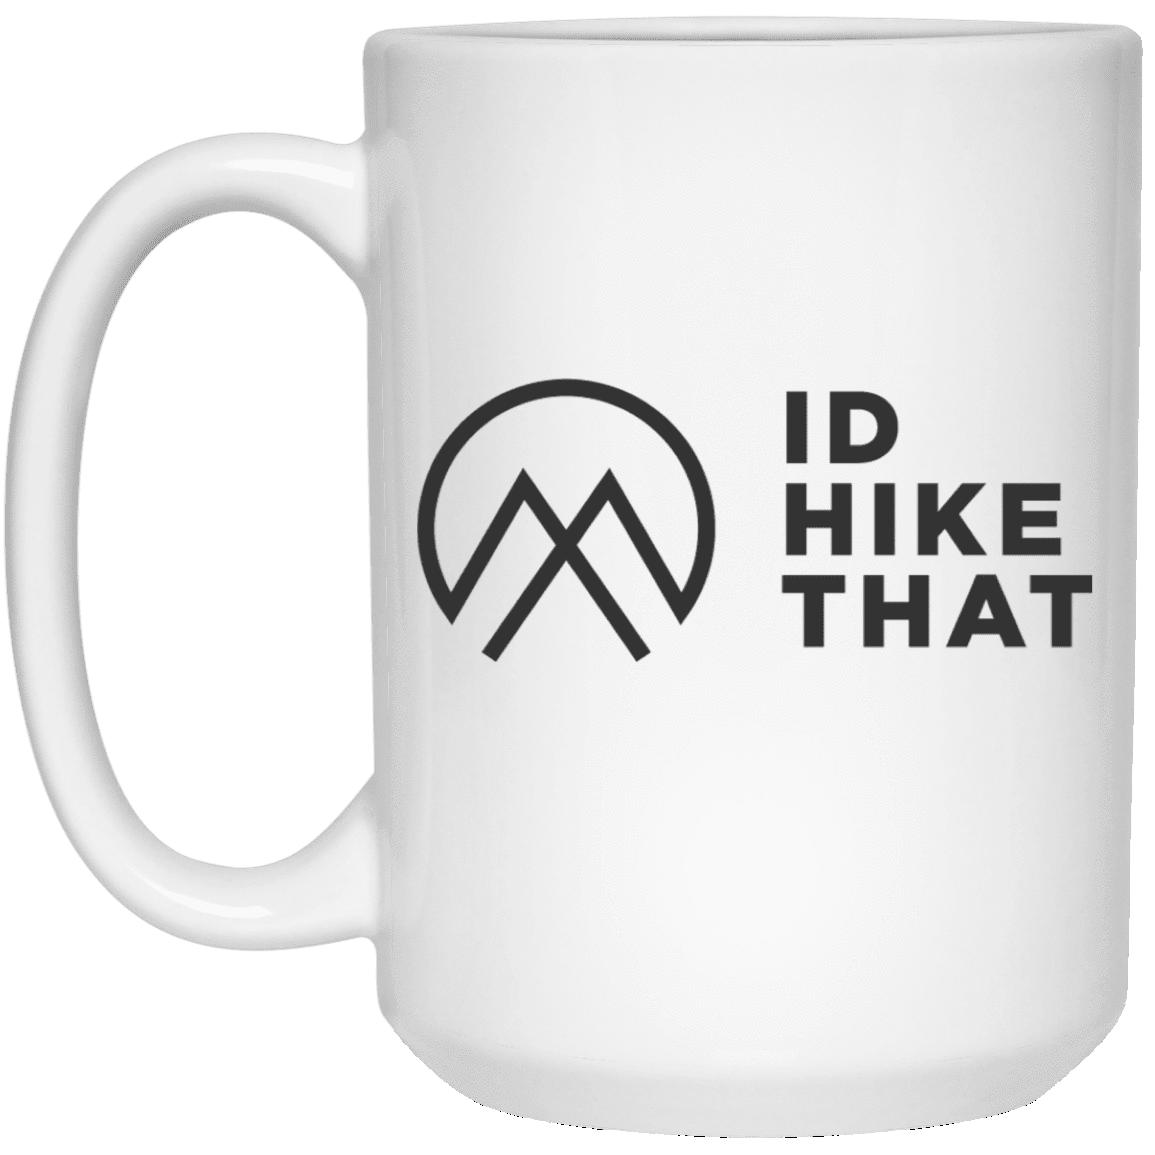 Drinkware White / One Size 15 oz. White Mug - I'd Hike That